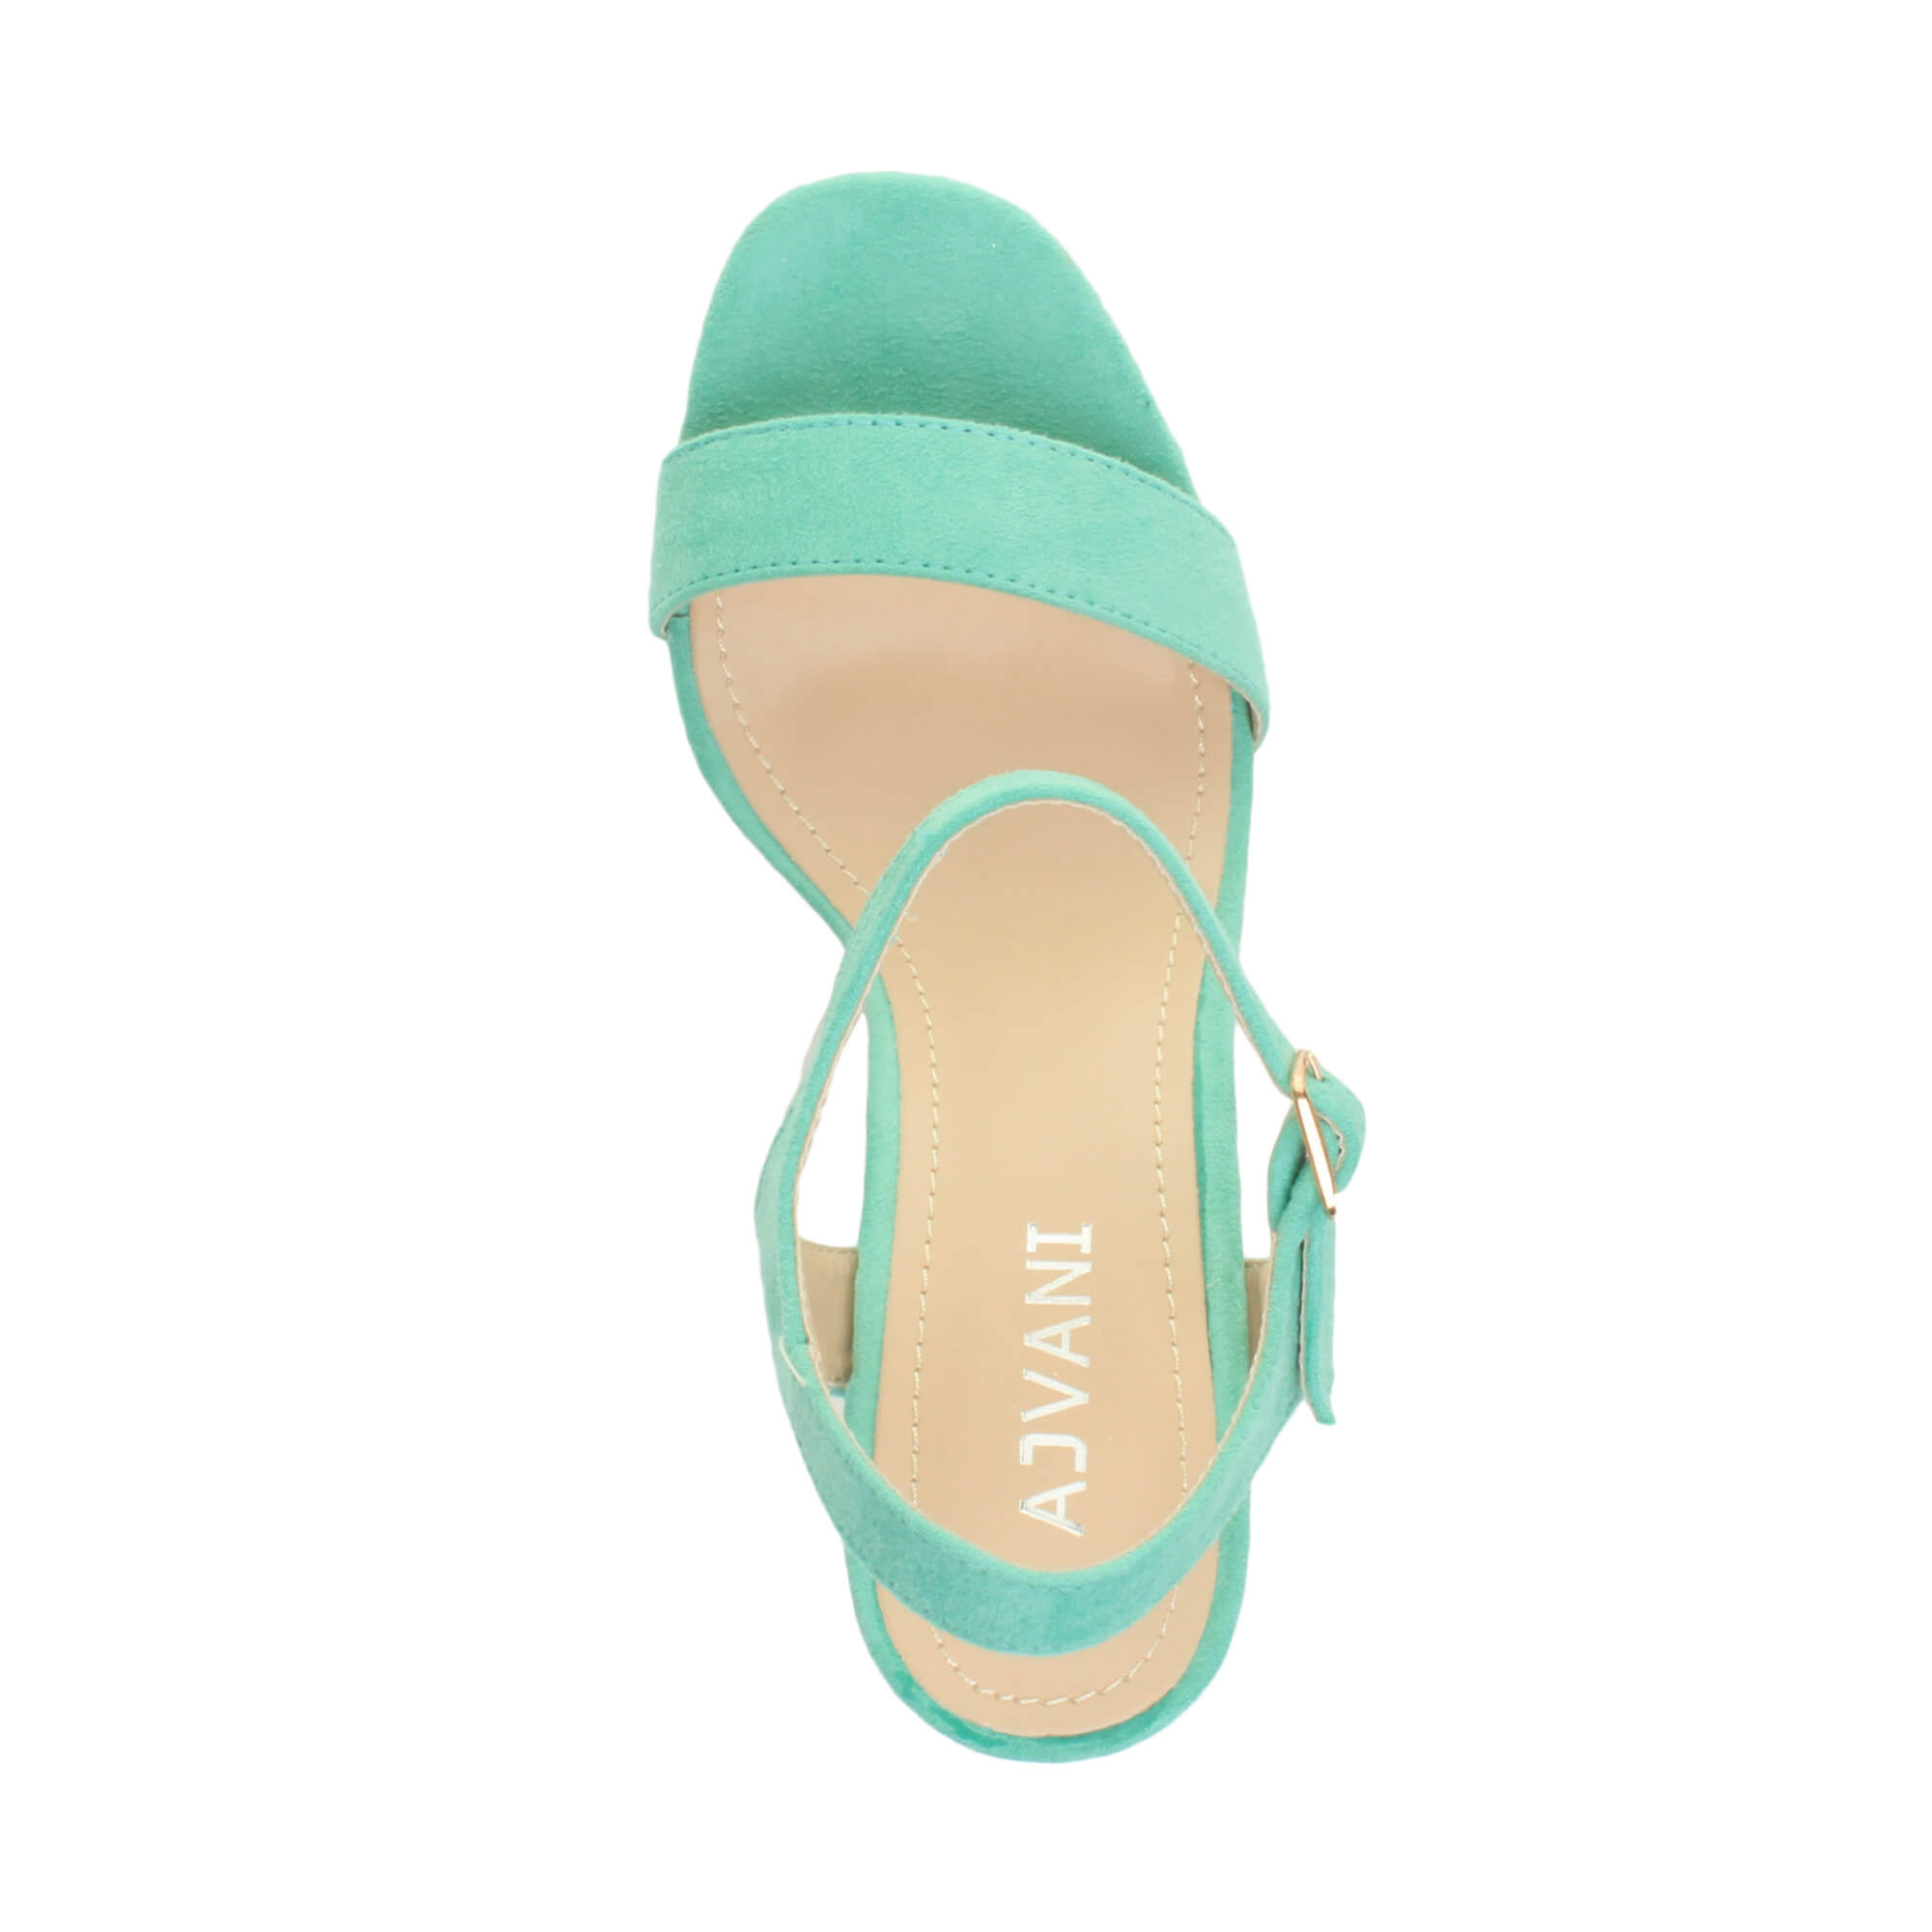 WOMENS-LADIES-HIGH-HEEL-BUCKLE-STRAPPY-BASIC-BARELY-THERE-SANDALS-SHOES-SIZE thumbnail 63